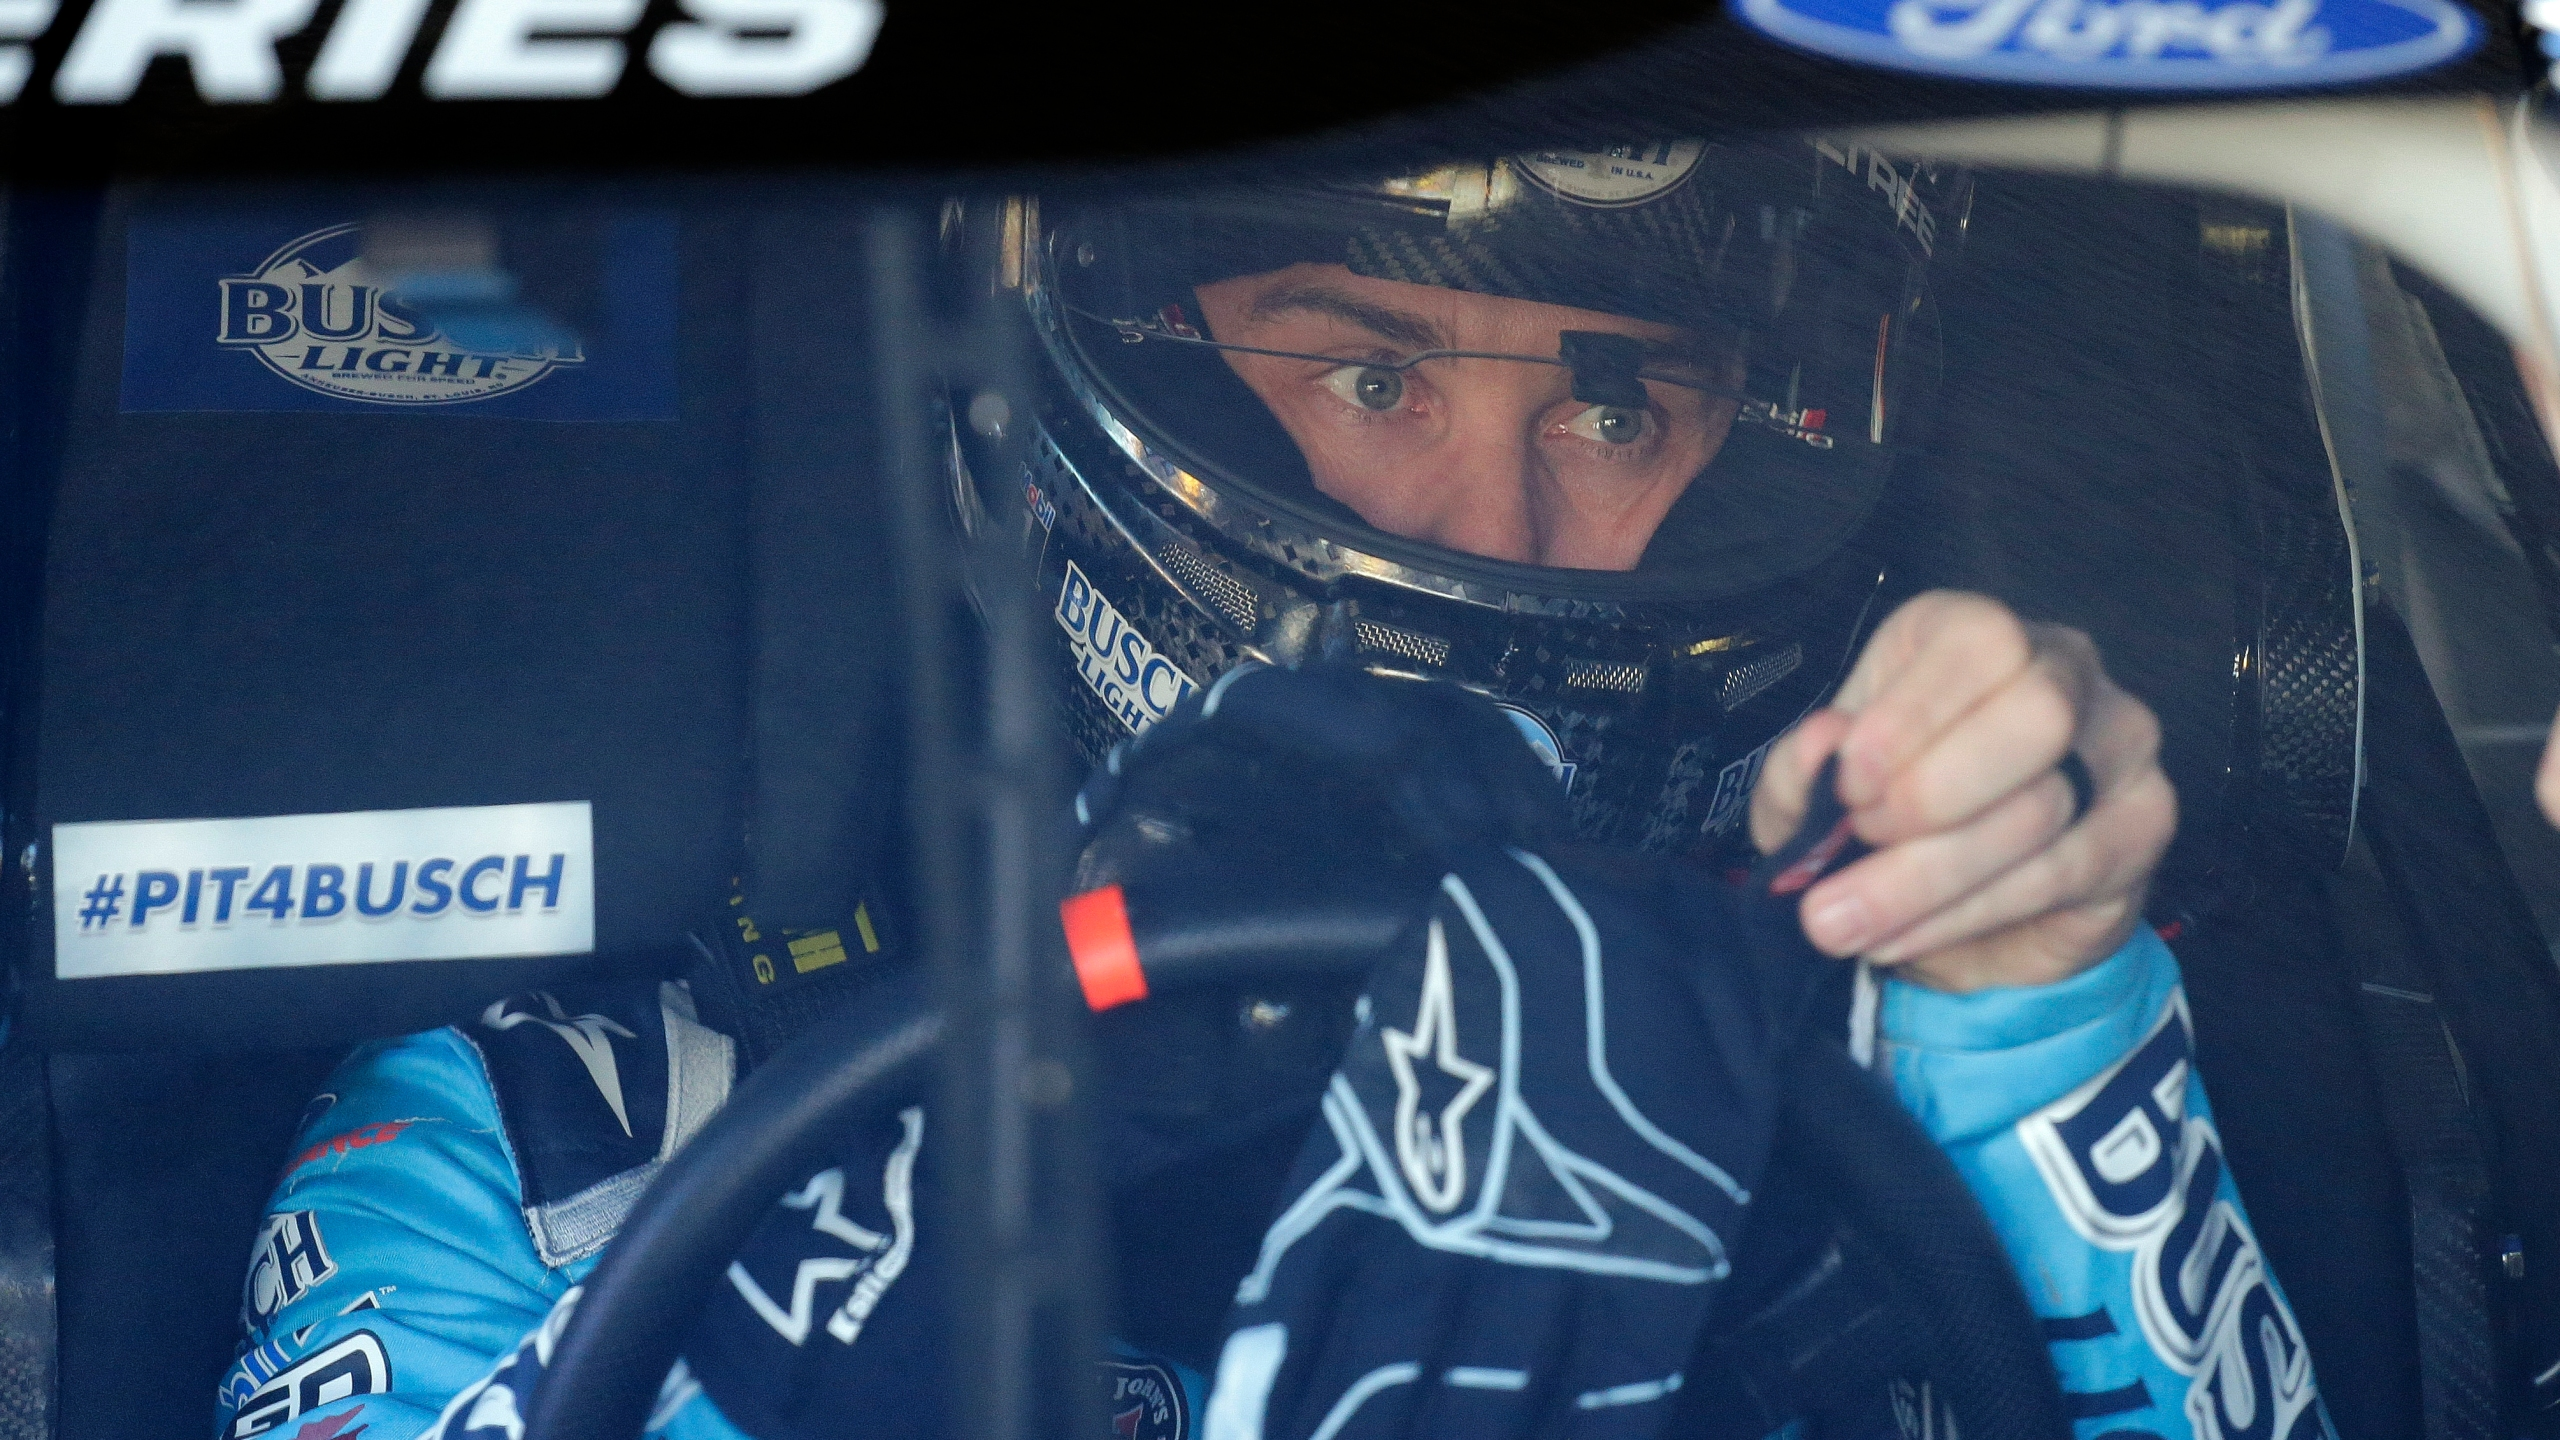 2014 Nascar Champion Harvick Signs 2 Year Extension With Shr